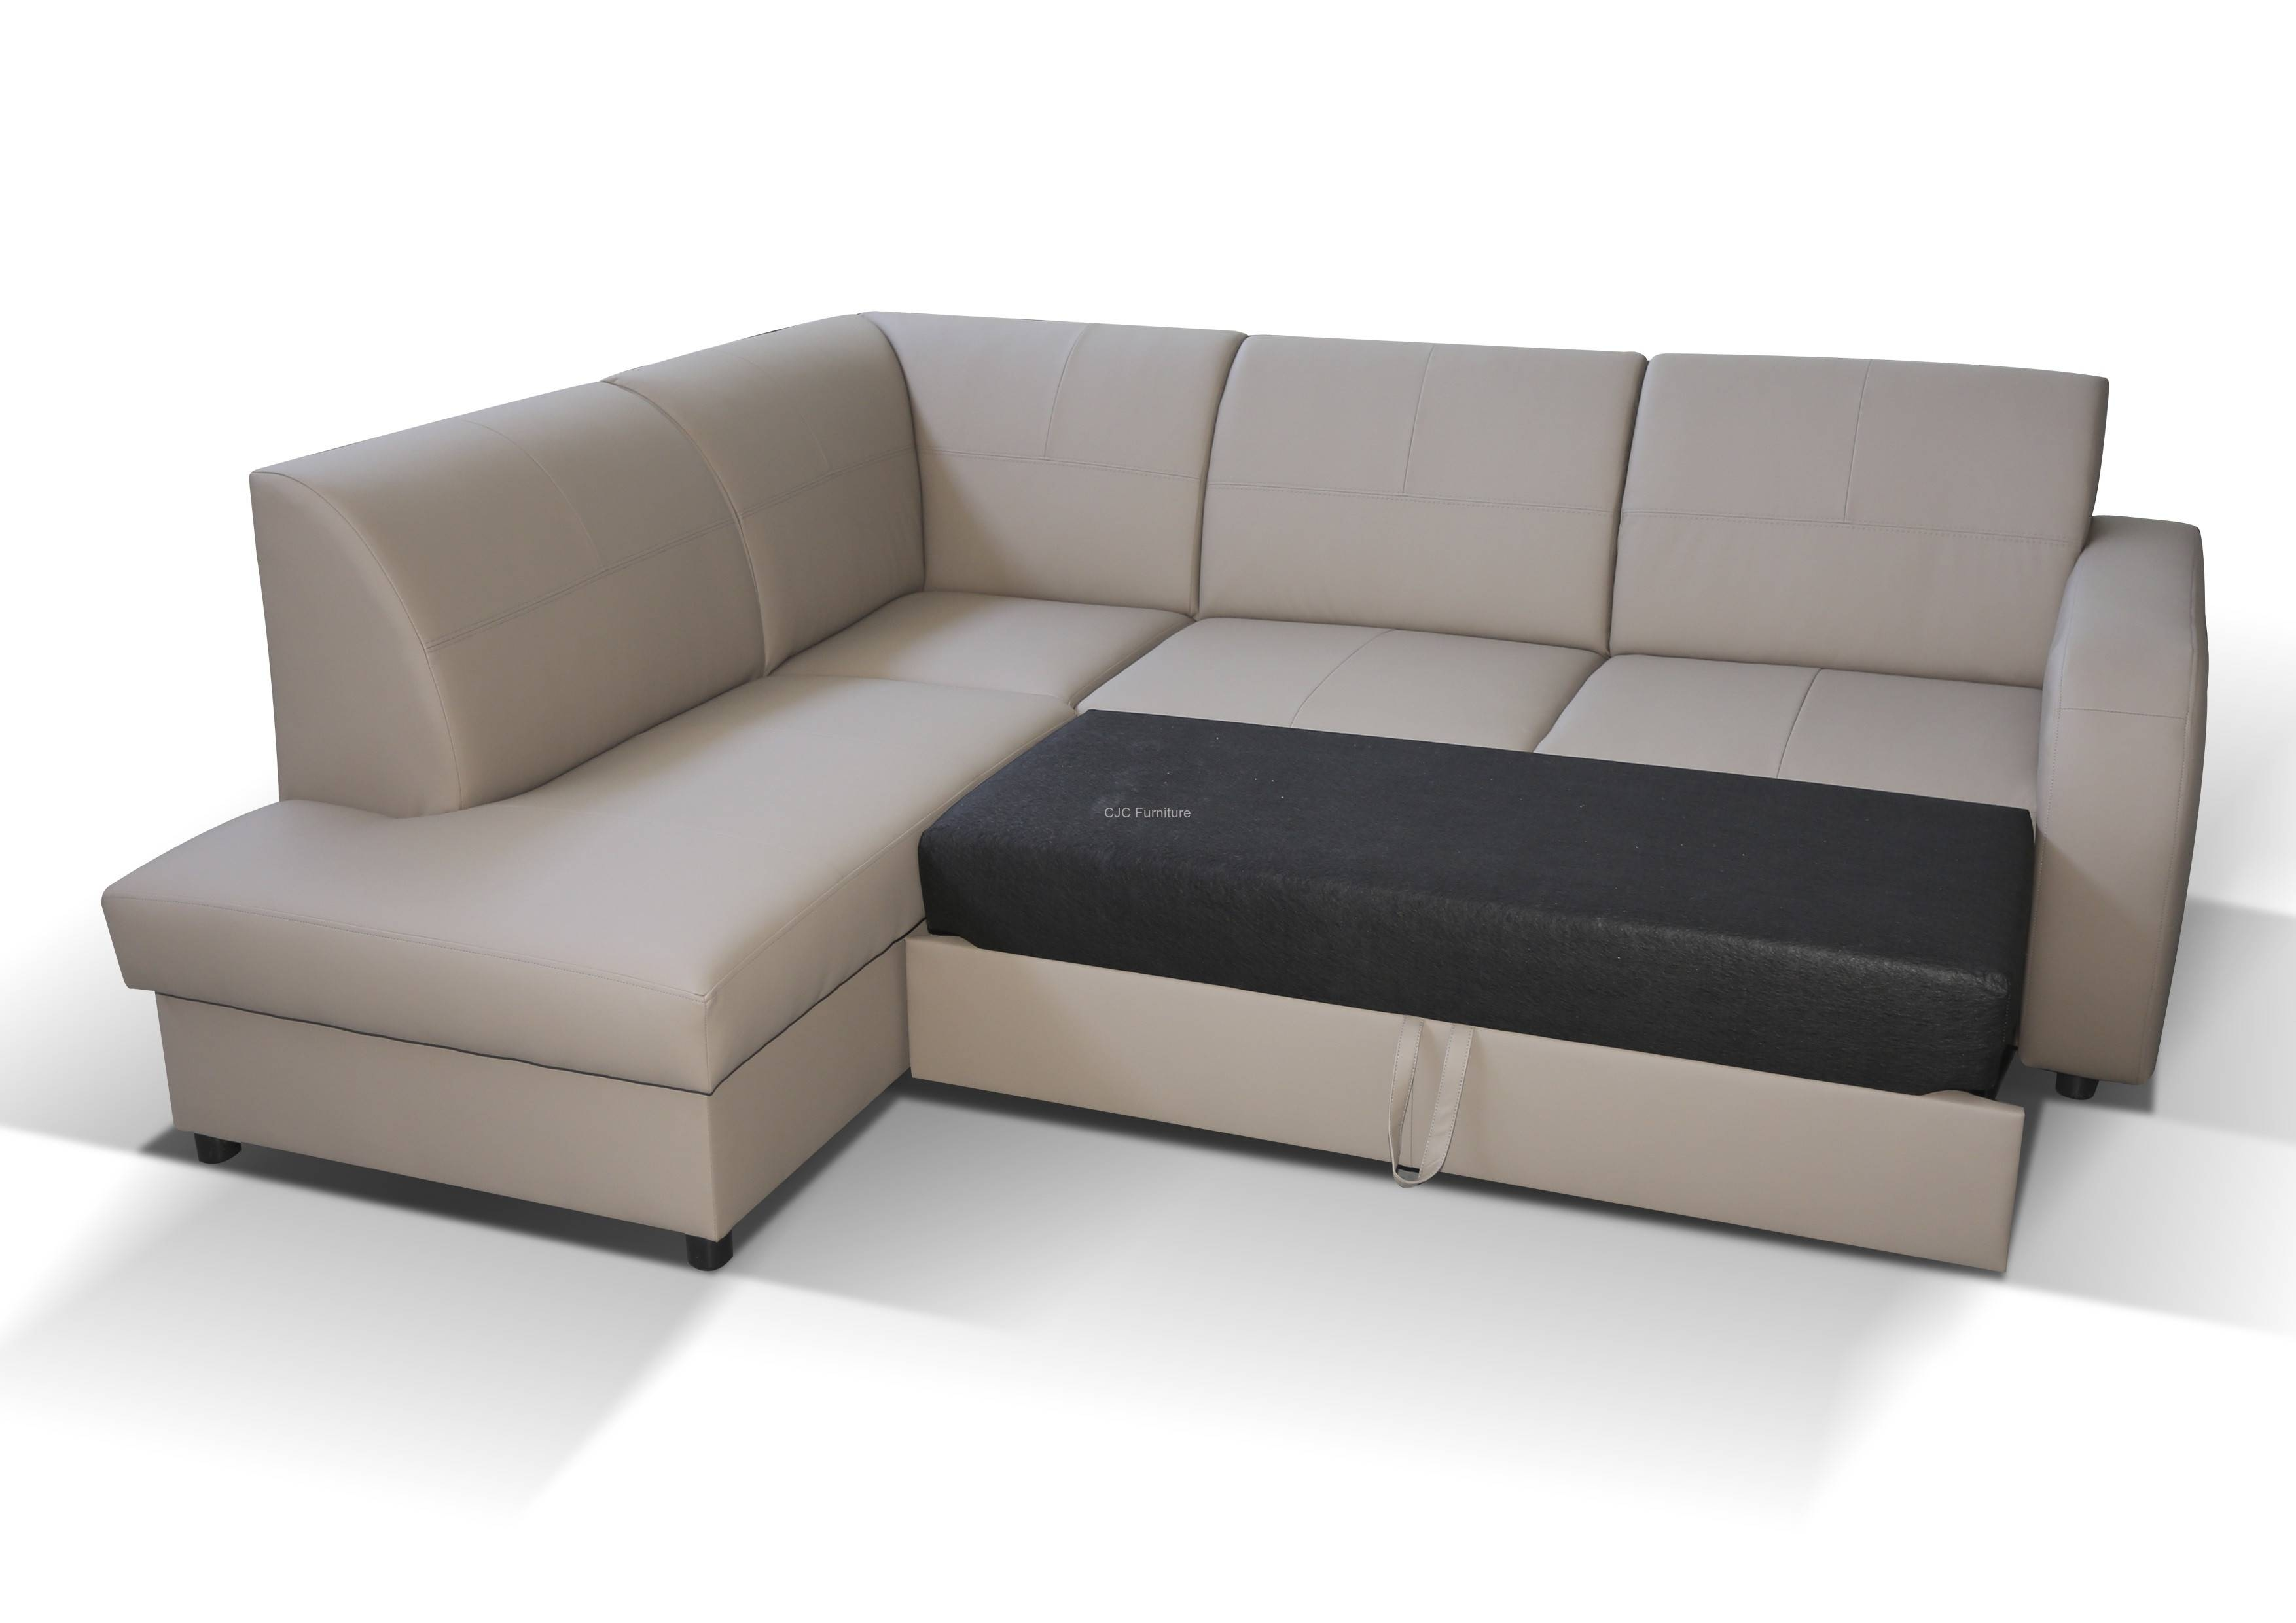 Sofas Center : Formidable Corner Sofa Picture Ideas Beds Uk Cheap in Cheap Corner Sofa (Image 28 of 30)